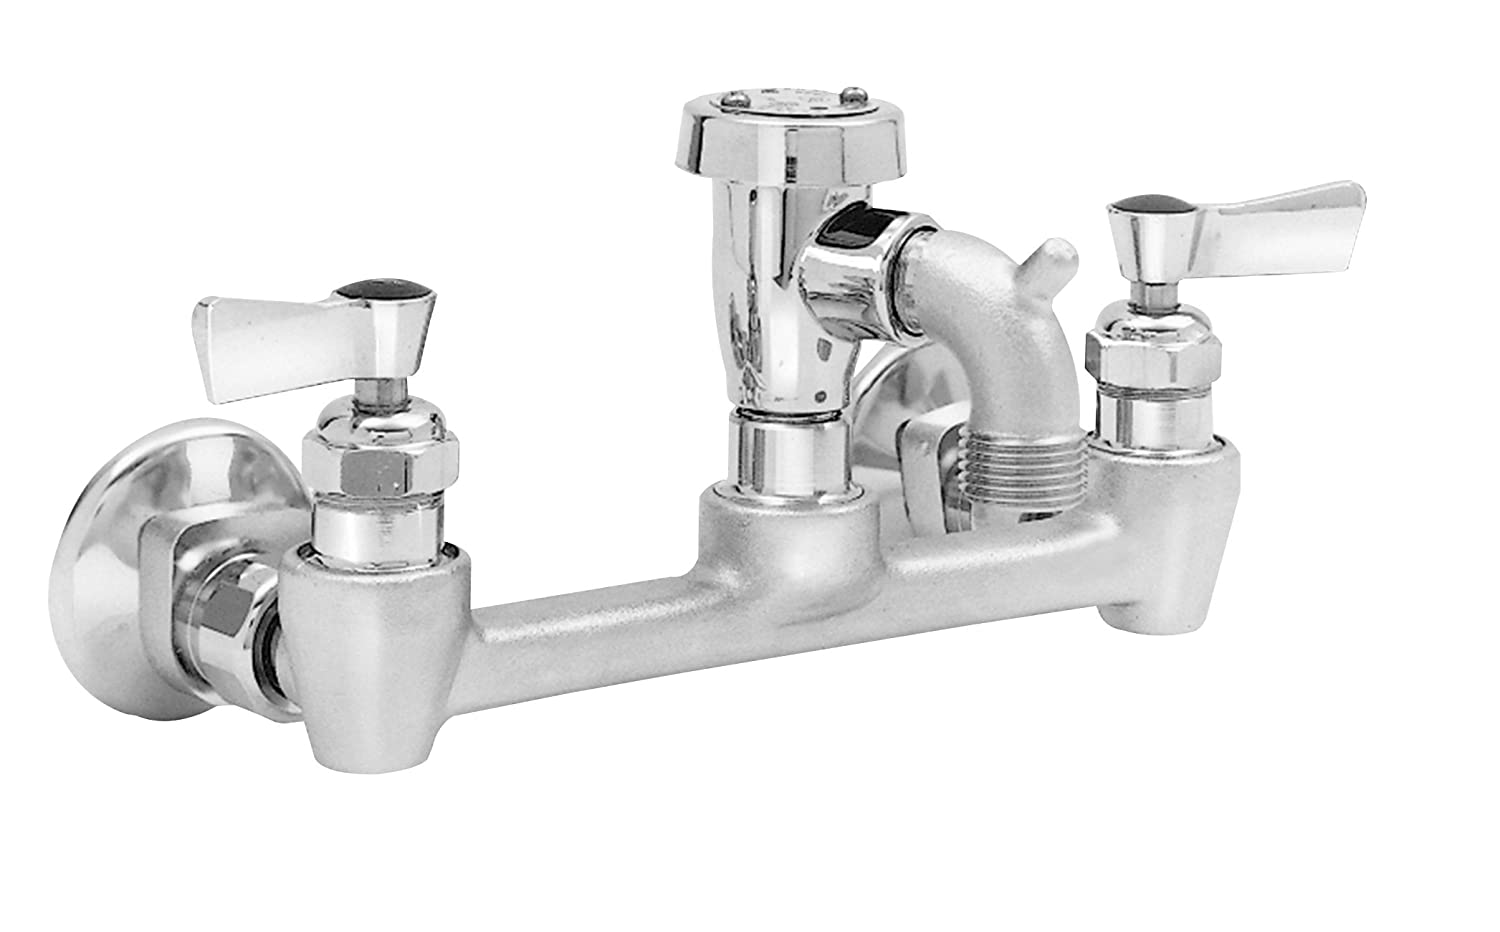 Fisher 19828 Adjustable Wall Mount Service Sink Faucet With Short Spout And Vacuum Breaker With Ez Install Adapters 8 Amazon Com Industrial Scientific